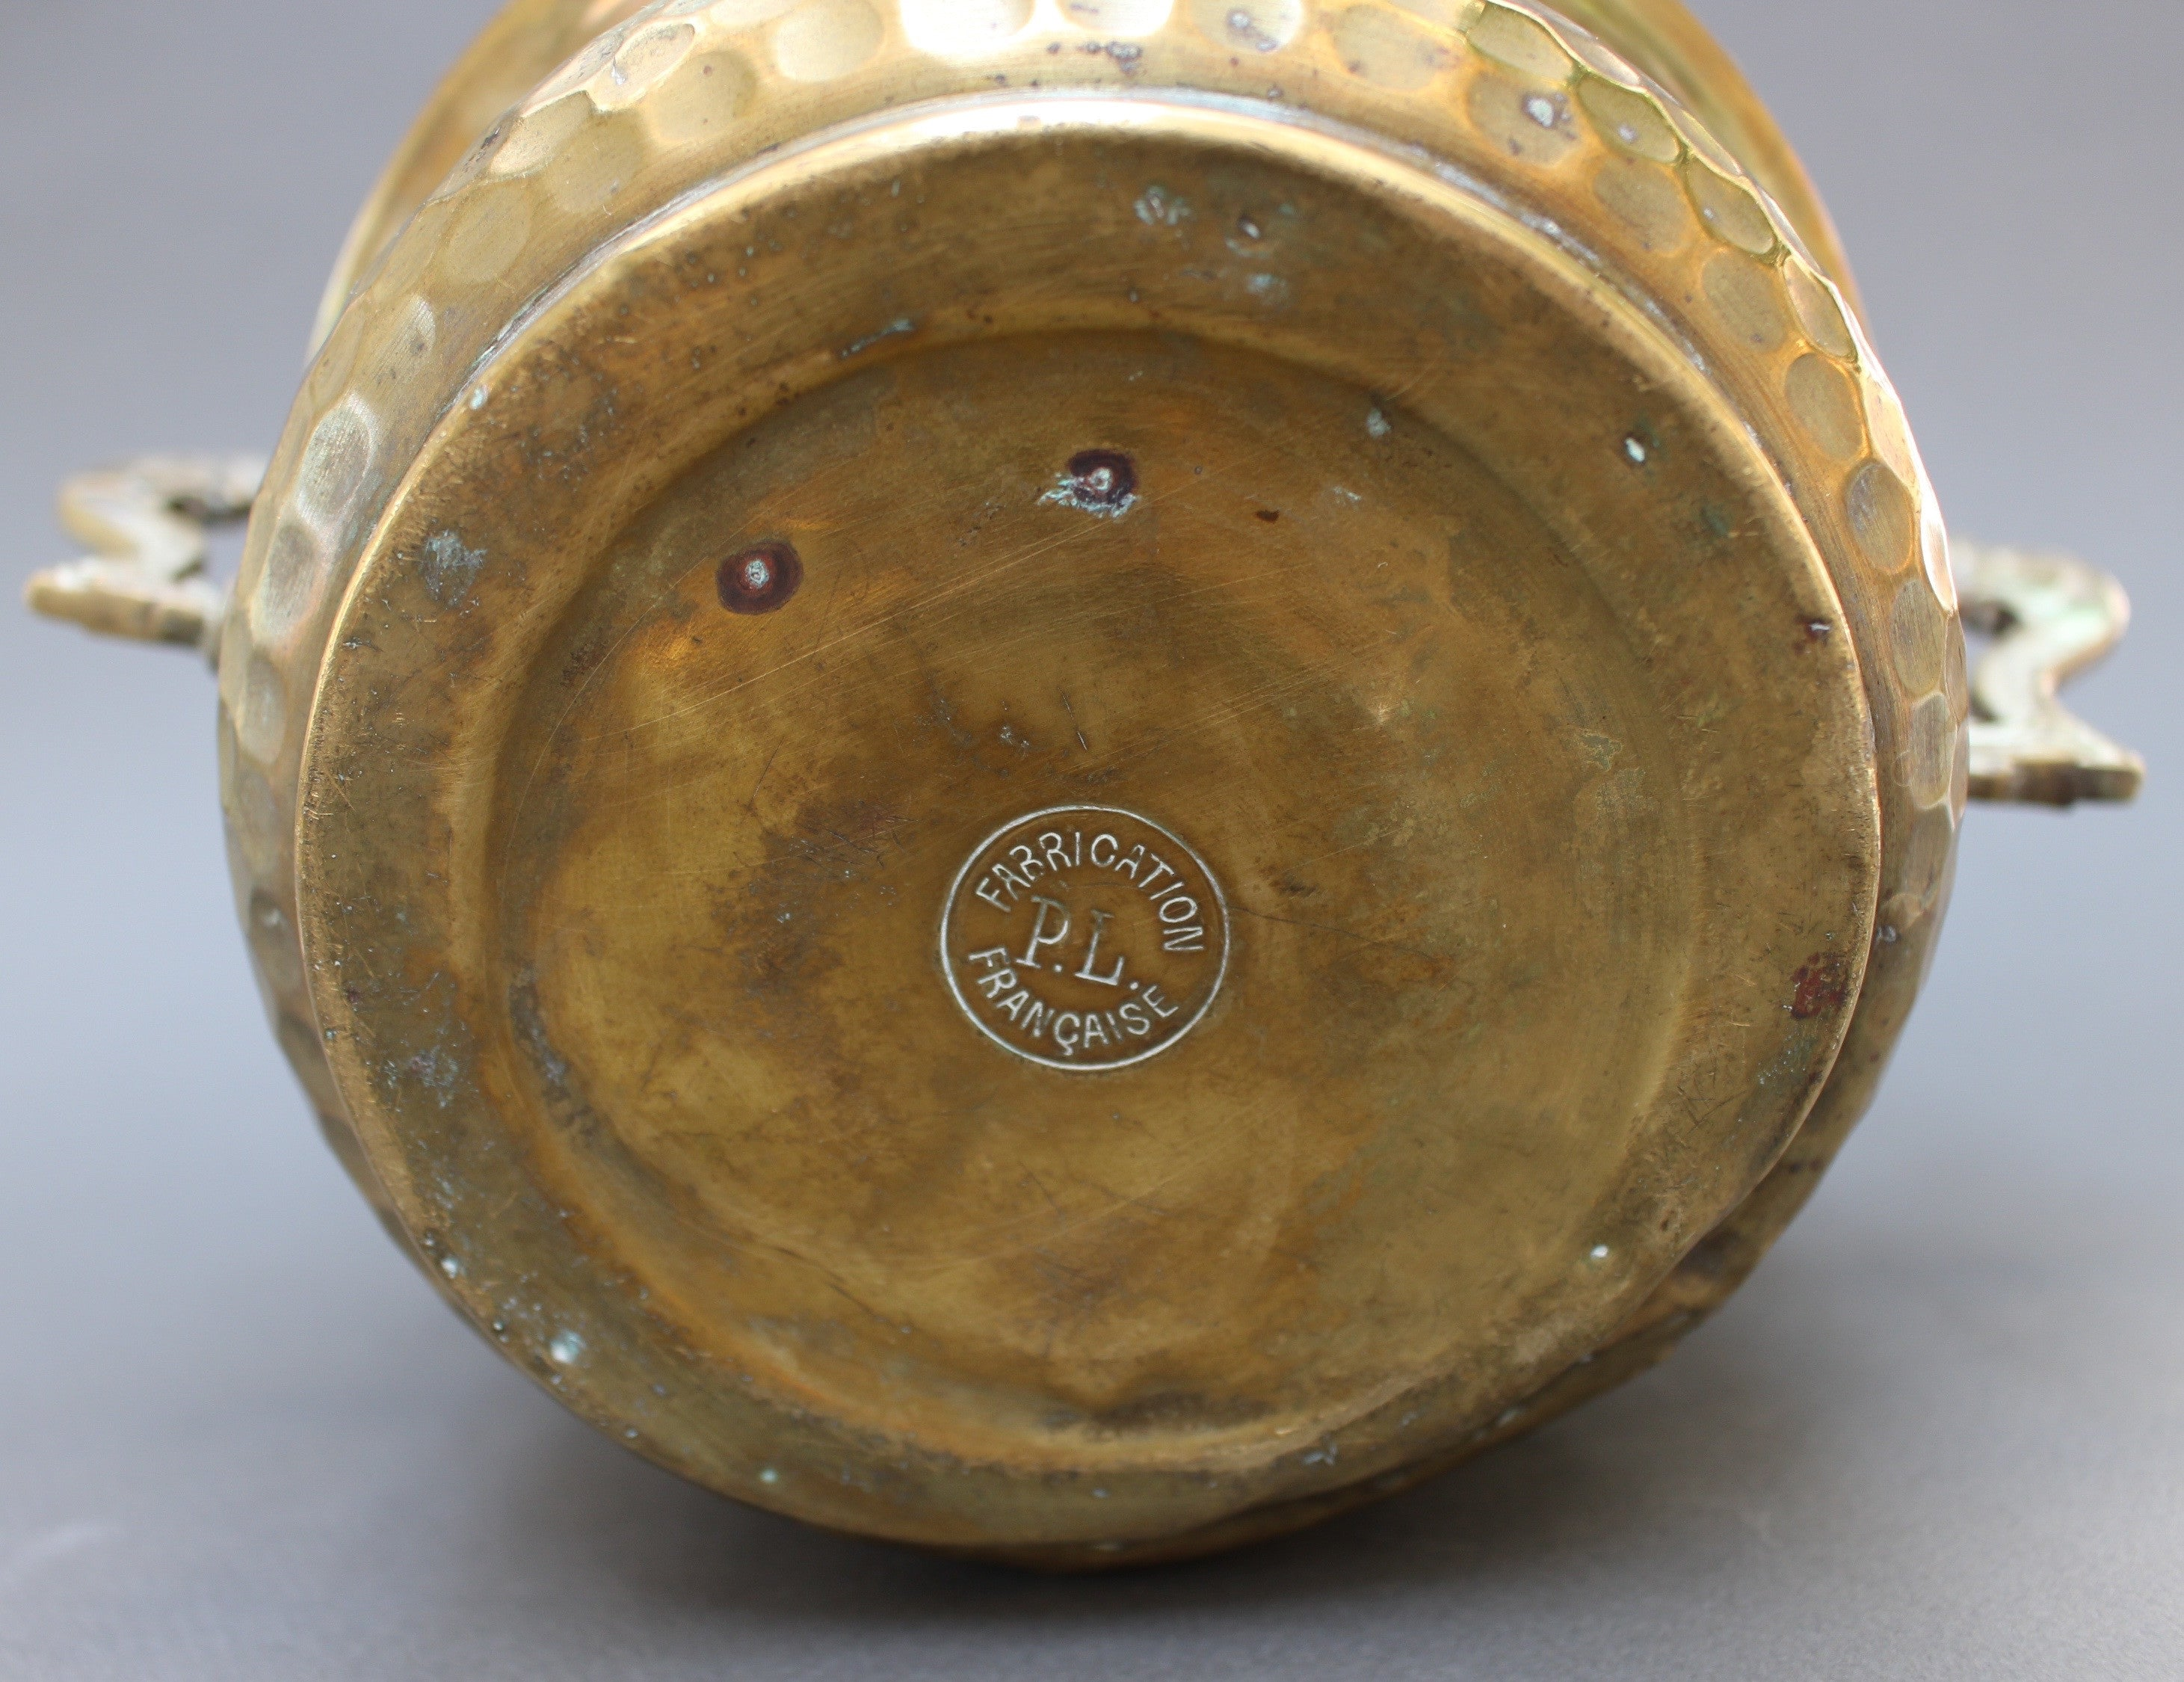 Vintage French Round Brass Pot (c. Early 20th Century)